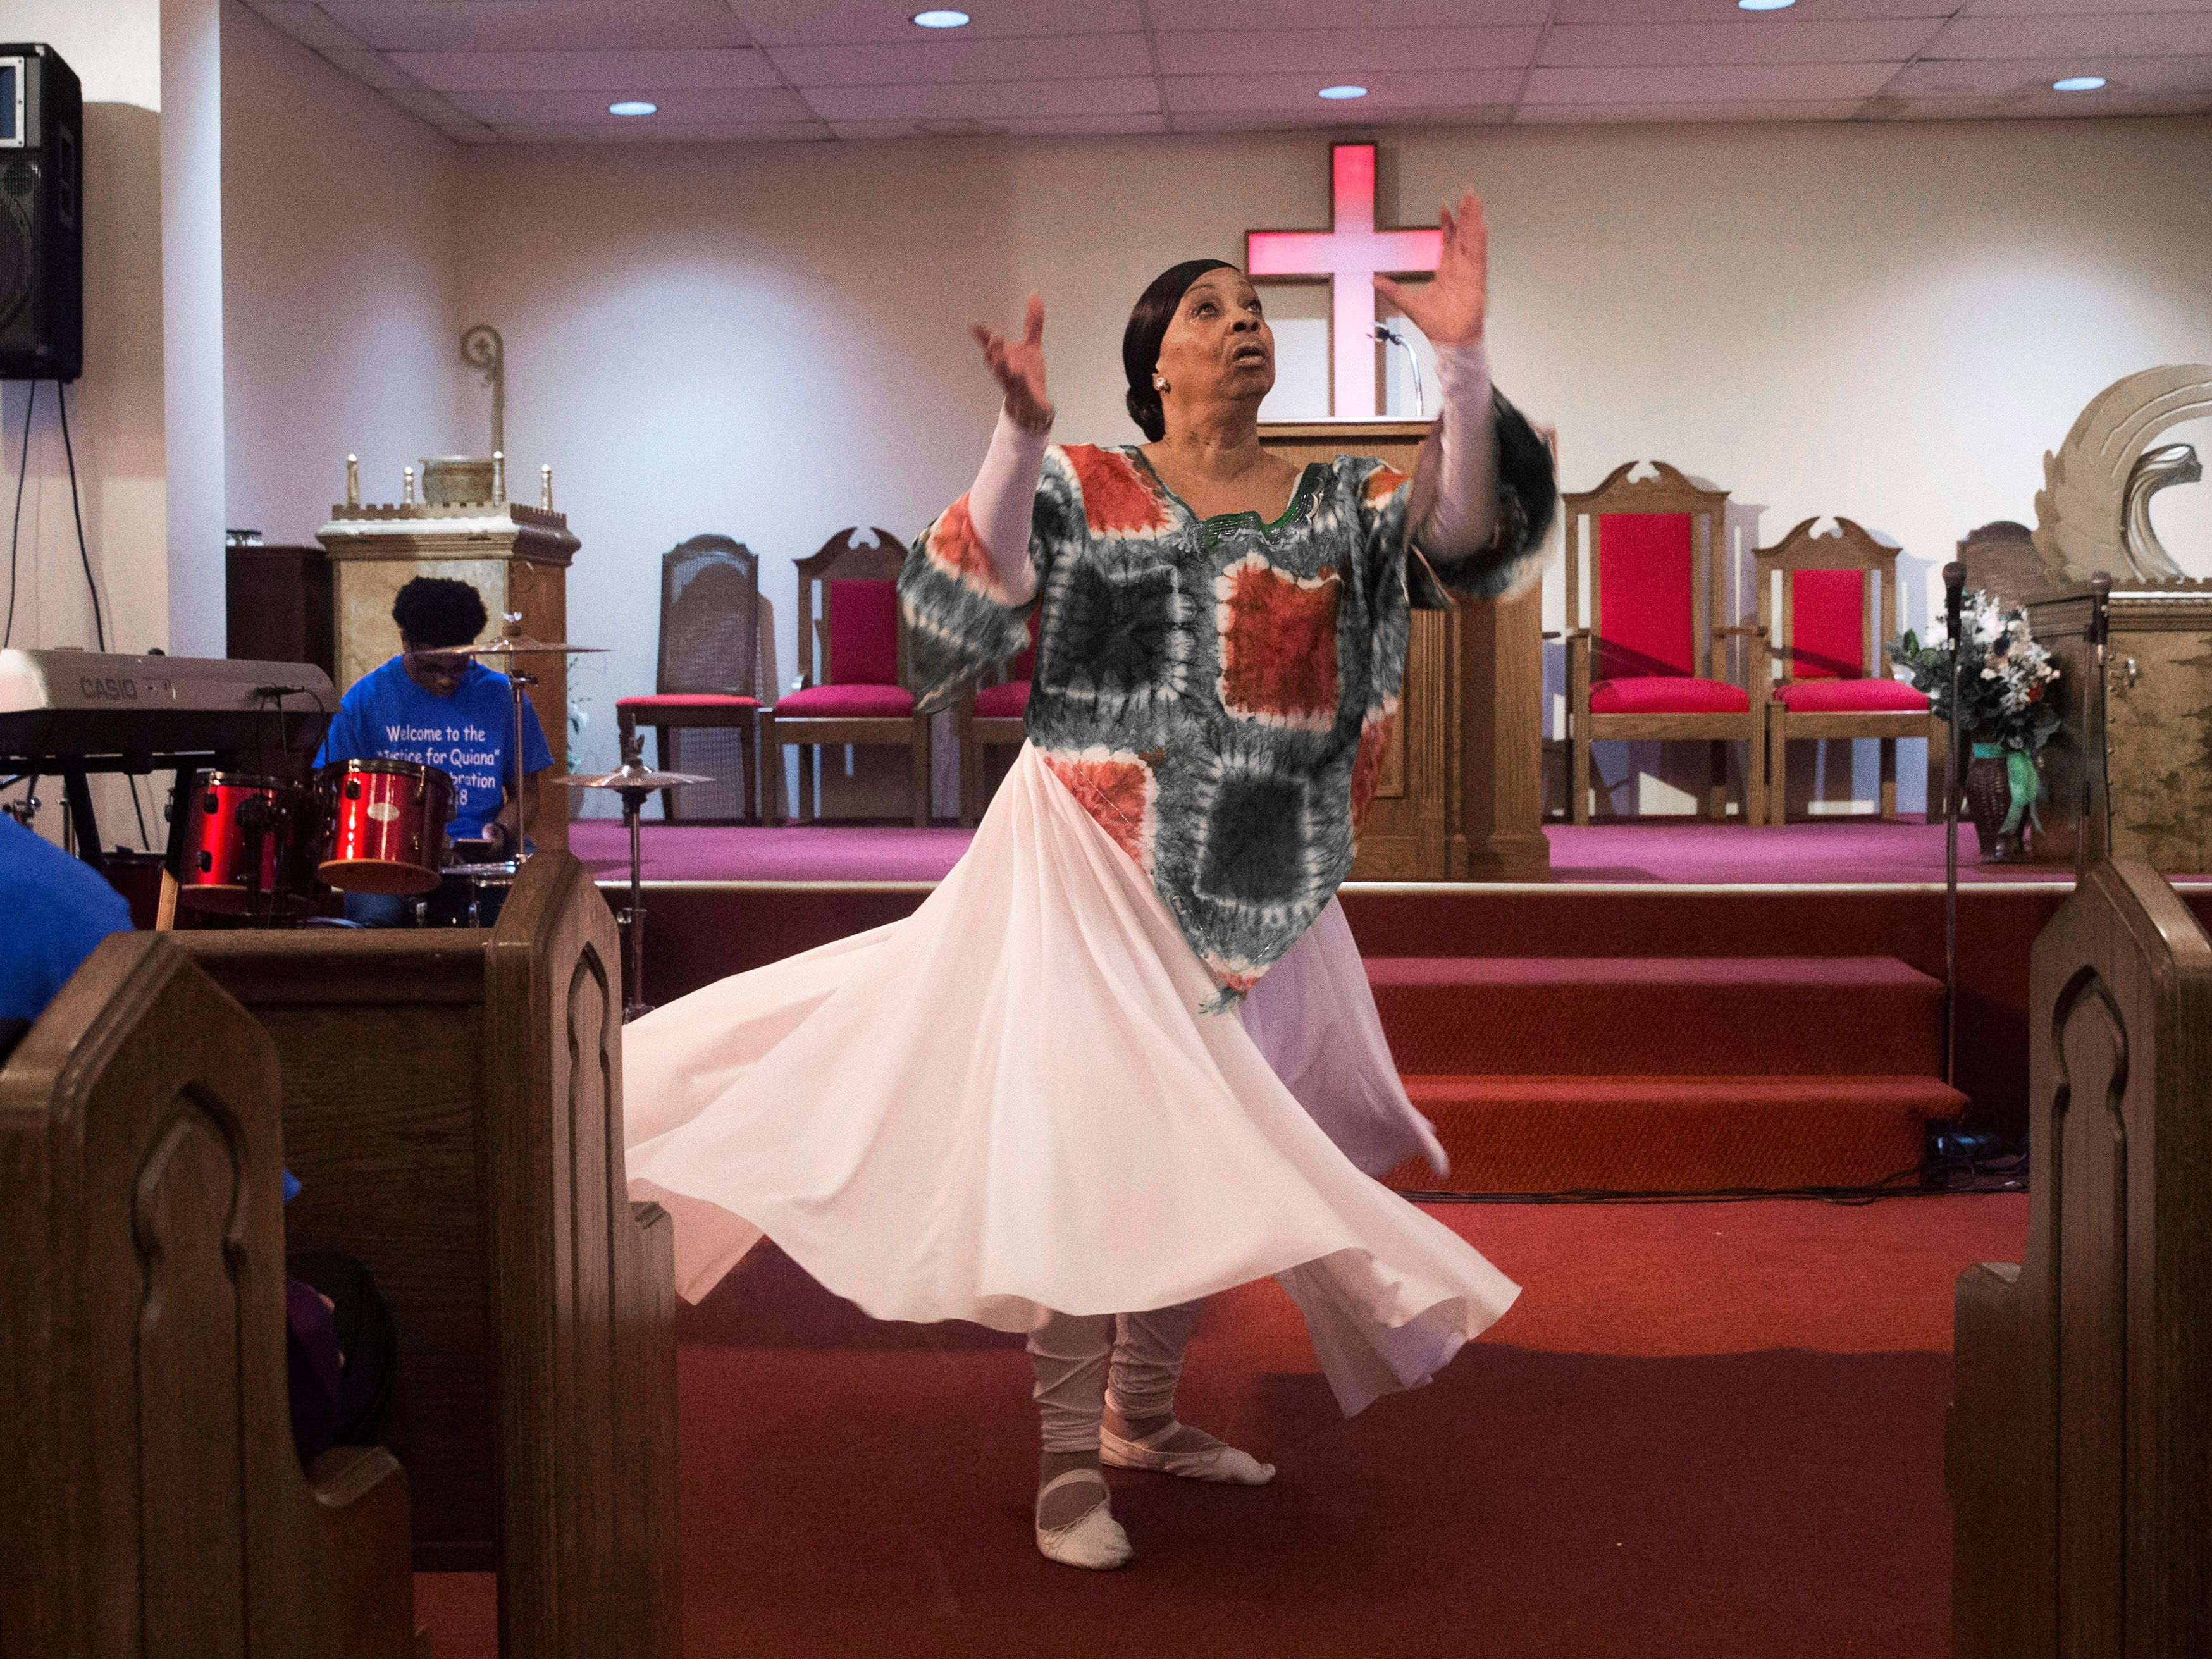 Cindy Dow performs a Praise Dance at the start of service. Every year Penny Dees held a march asking for justice for her daughter who was murdered in 1992. With the murderer found, and charged but still not convicted, Penny decided to hold a victory celebration instead. With the rain, she held the event at her church, the Asbury Park Deliverence Center.